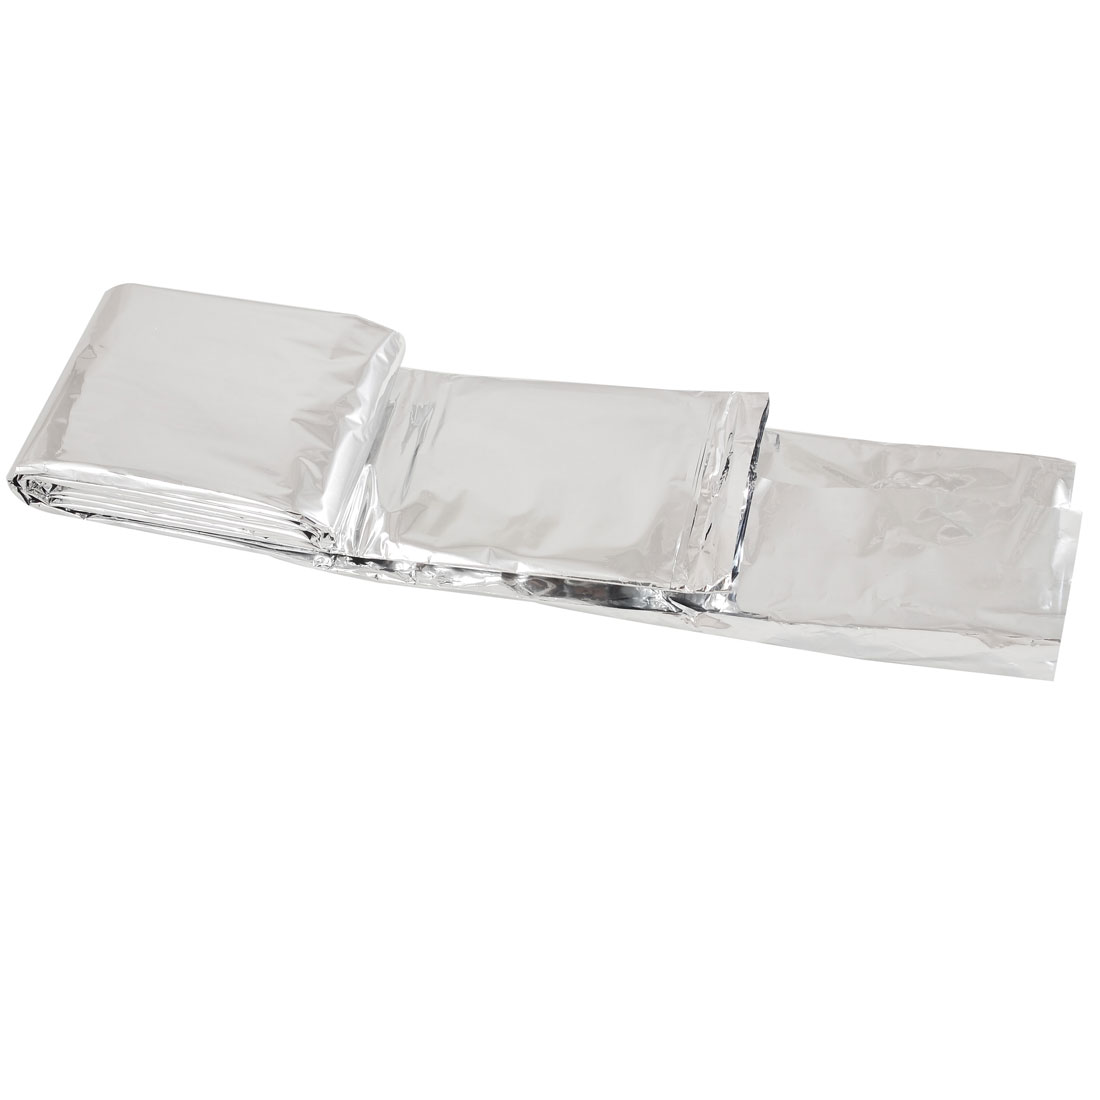 "Outdoor Emergency Rescue Solar Thermal Space Mylar Blanket 51.2"" x 82.6"""